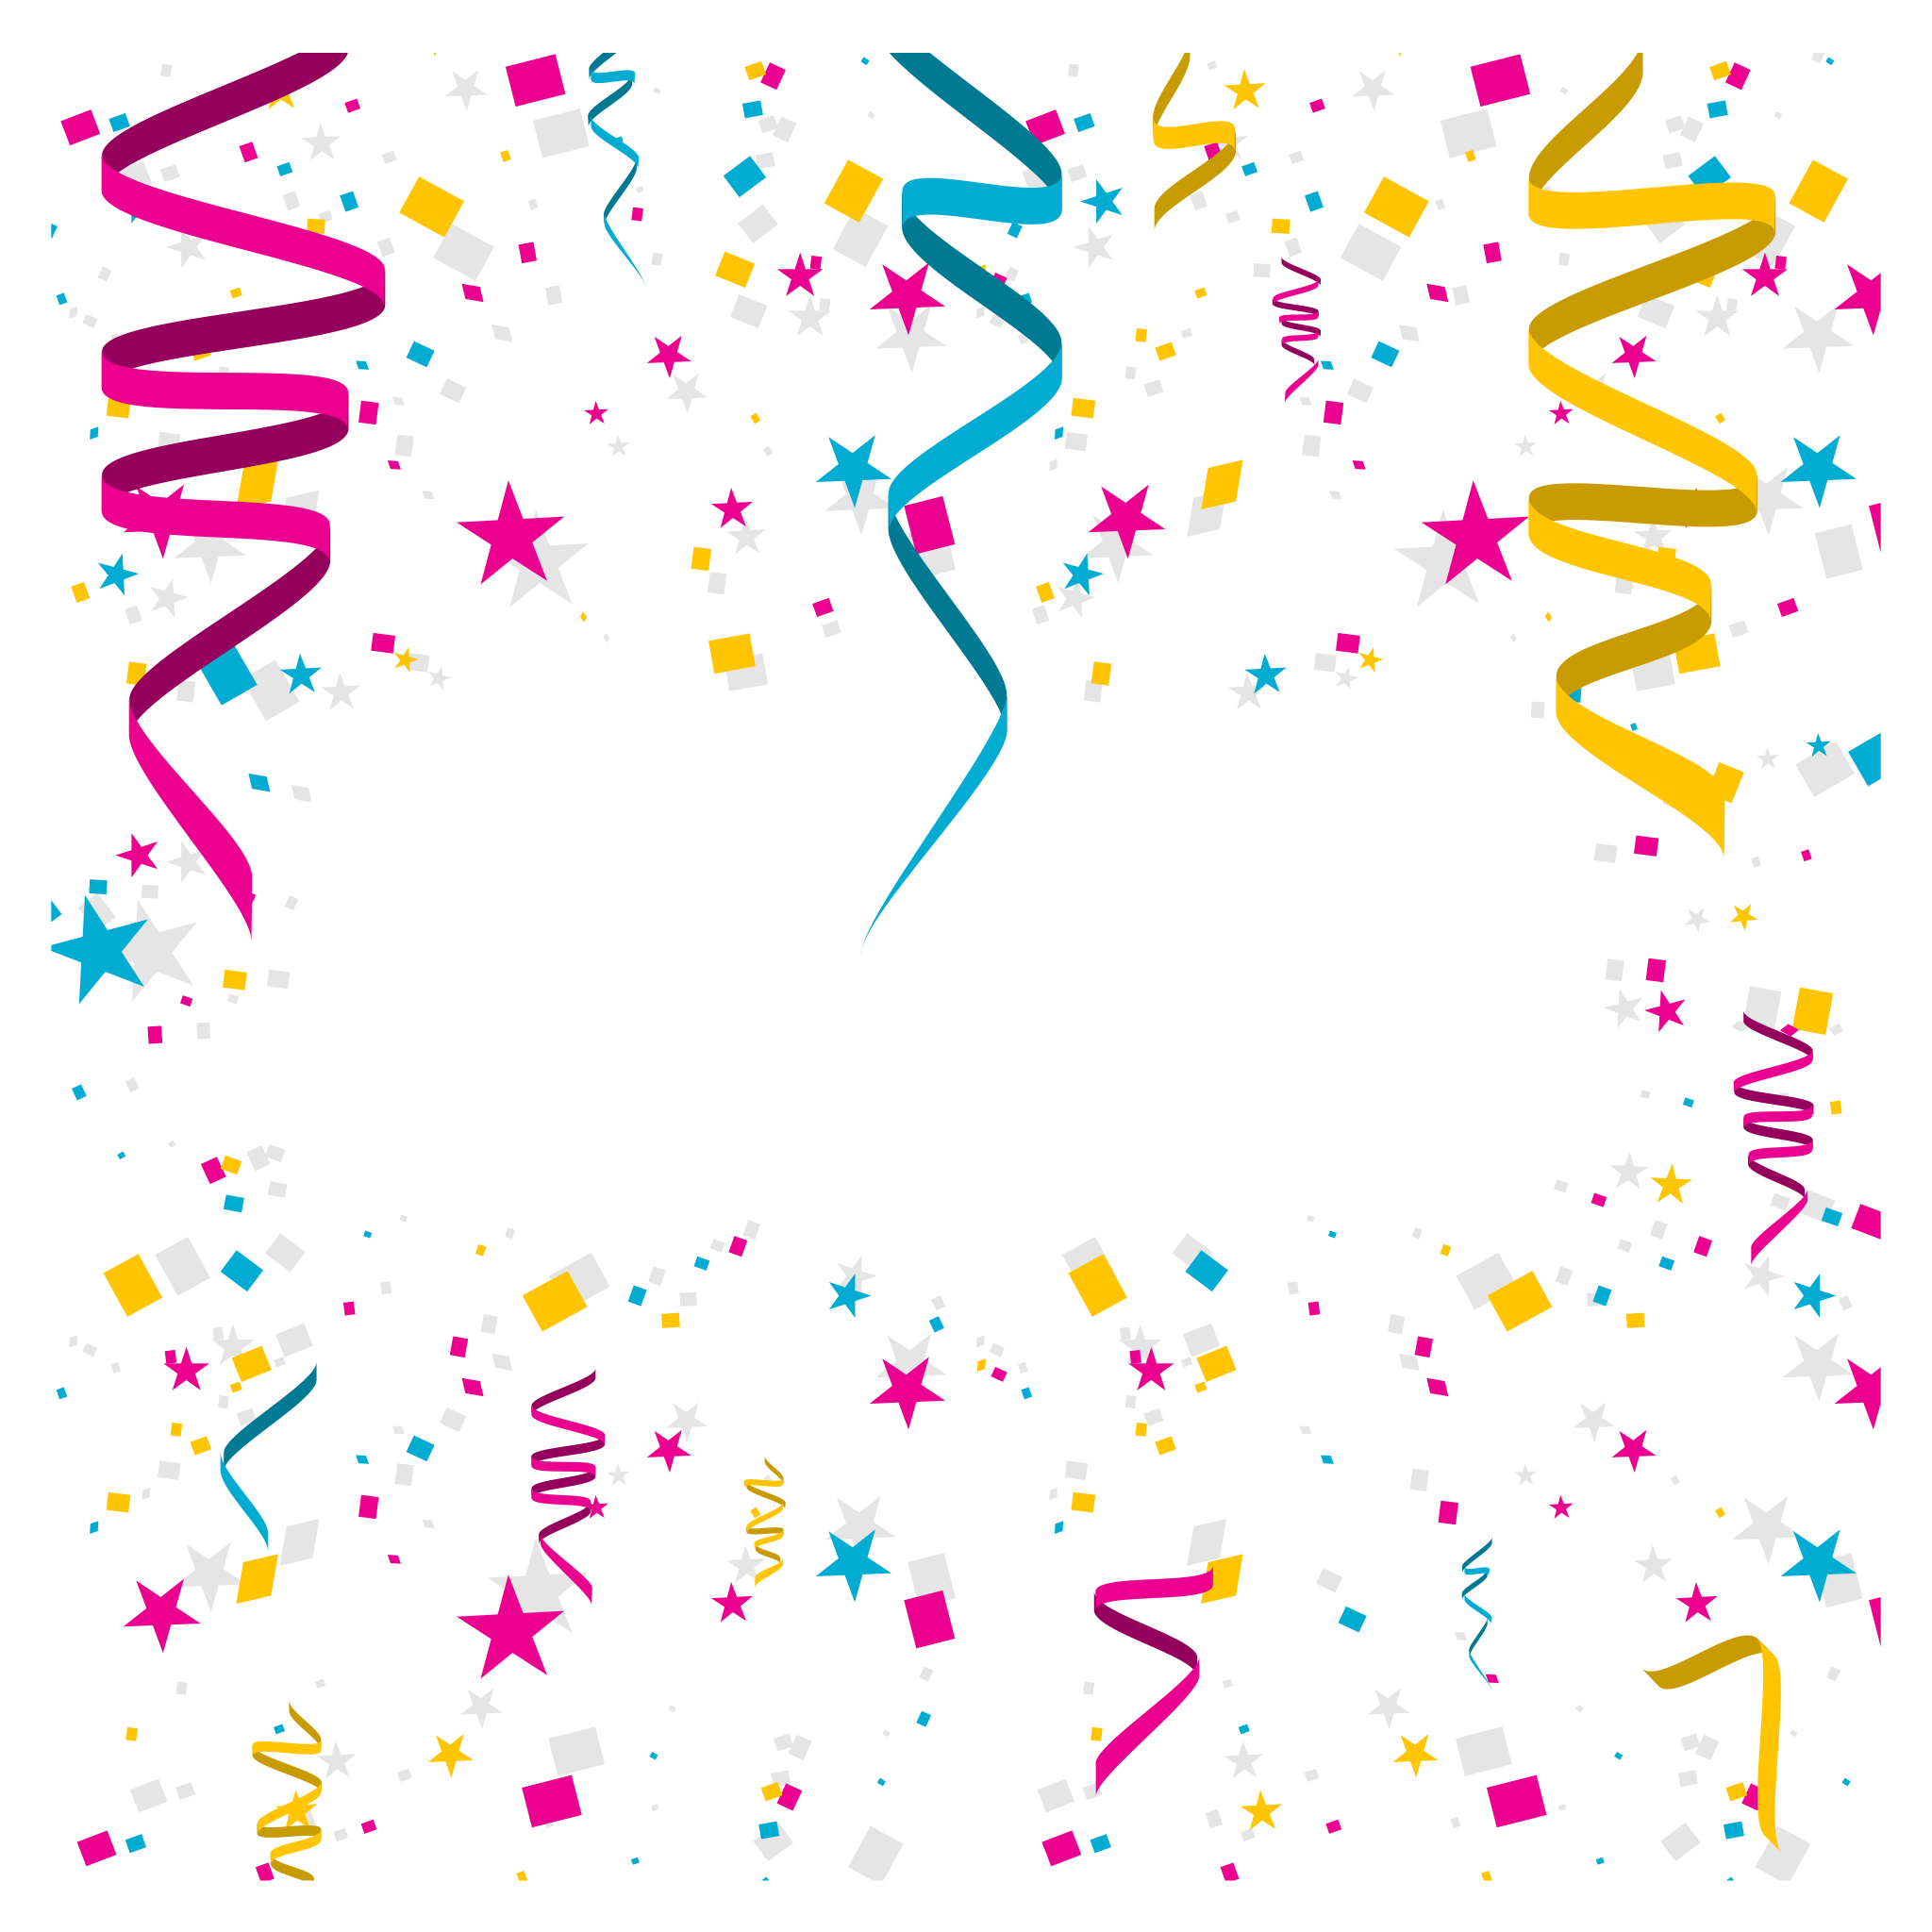 Party Confetti PNG Clip Art Image Free Download searchpng.com.